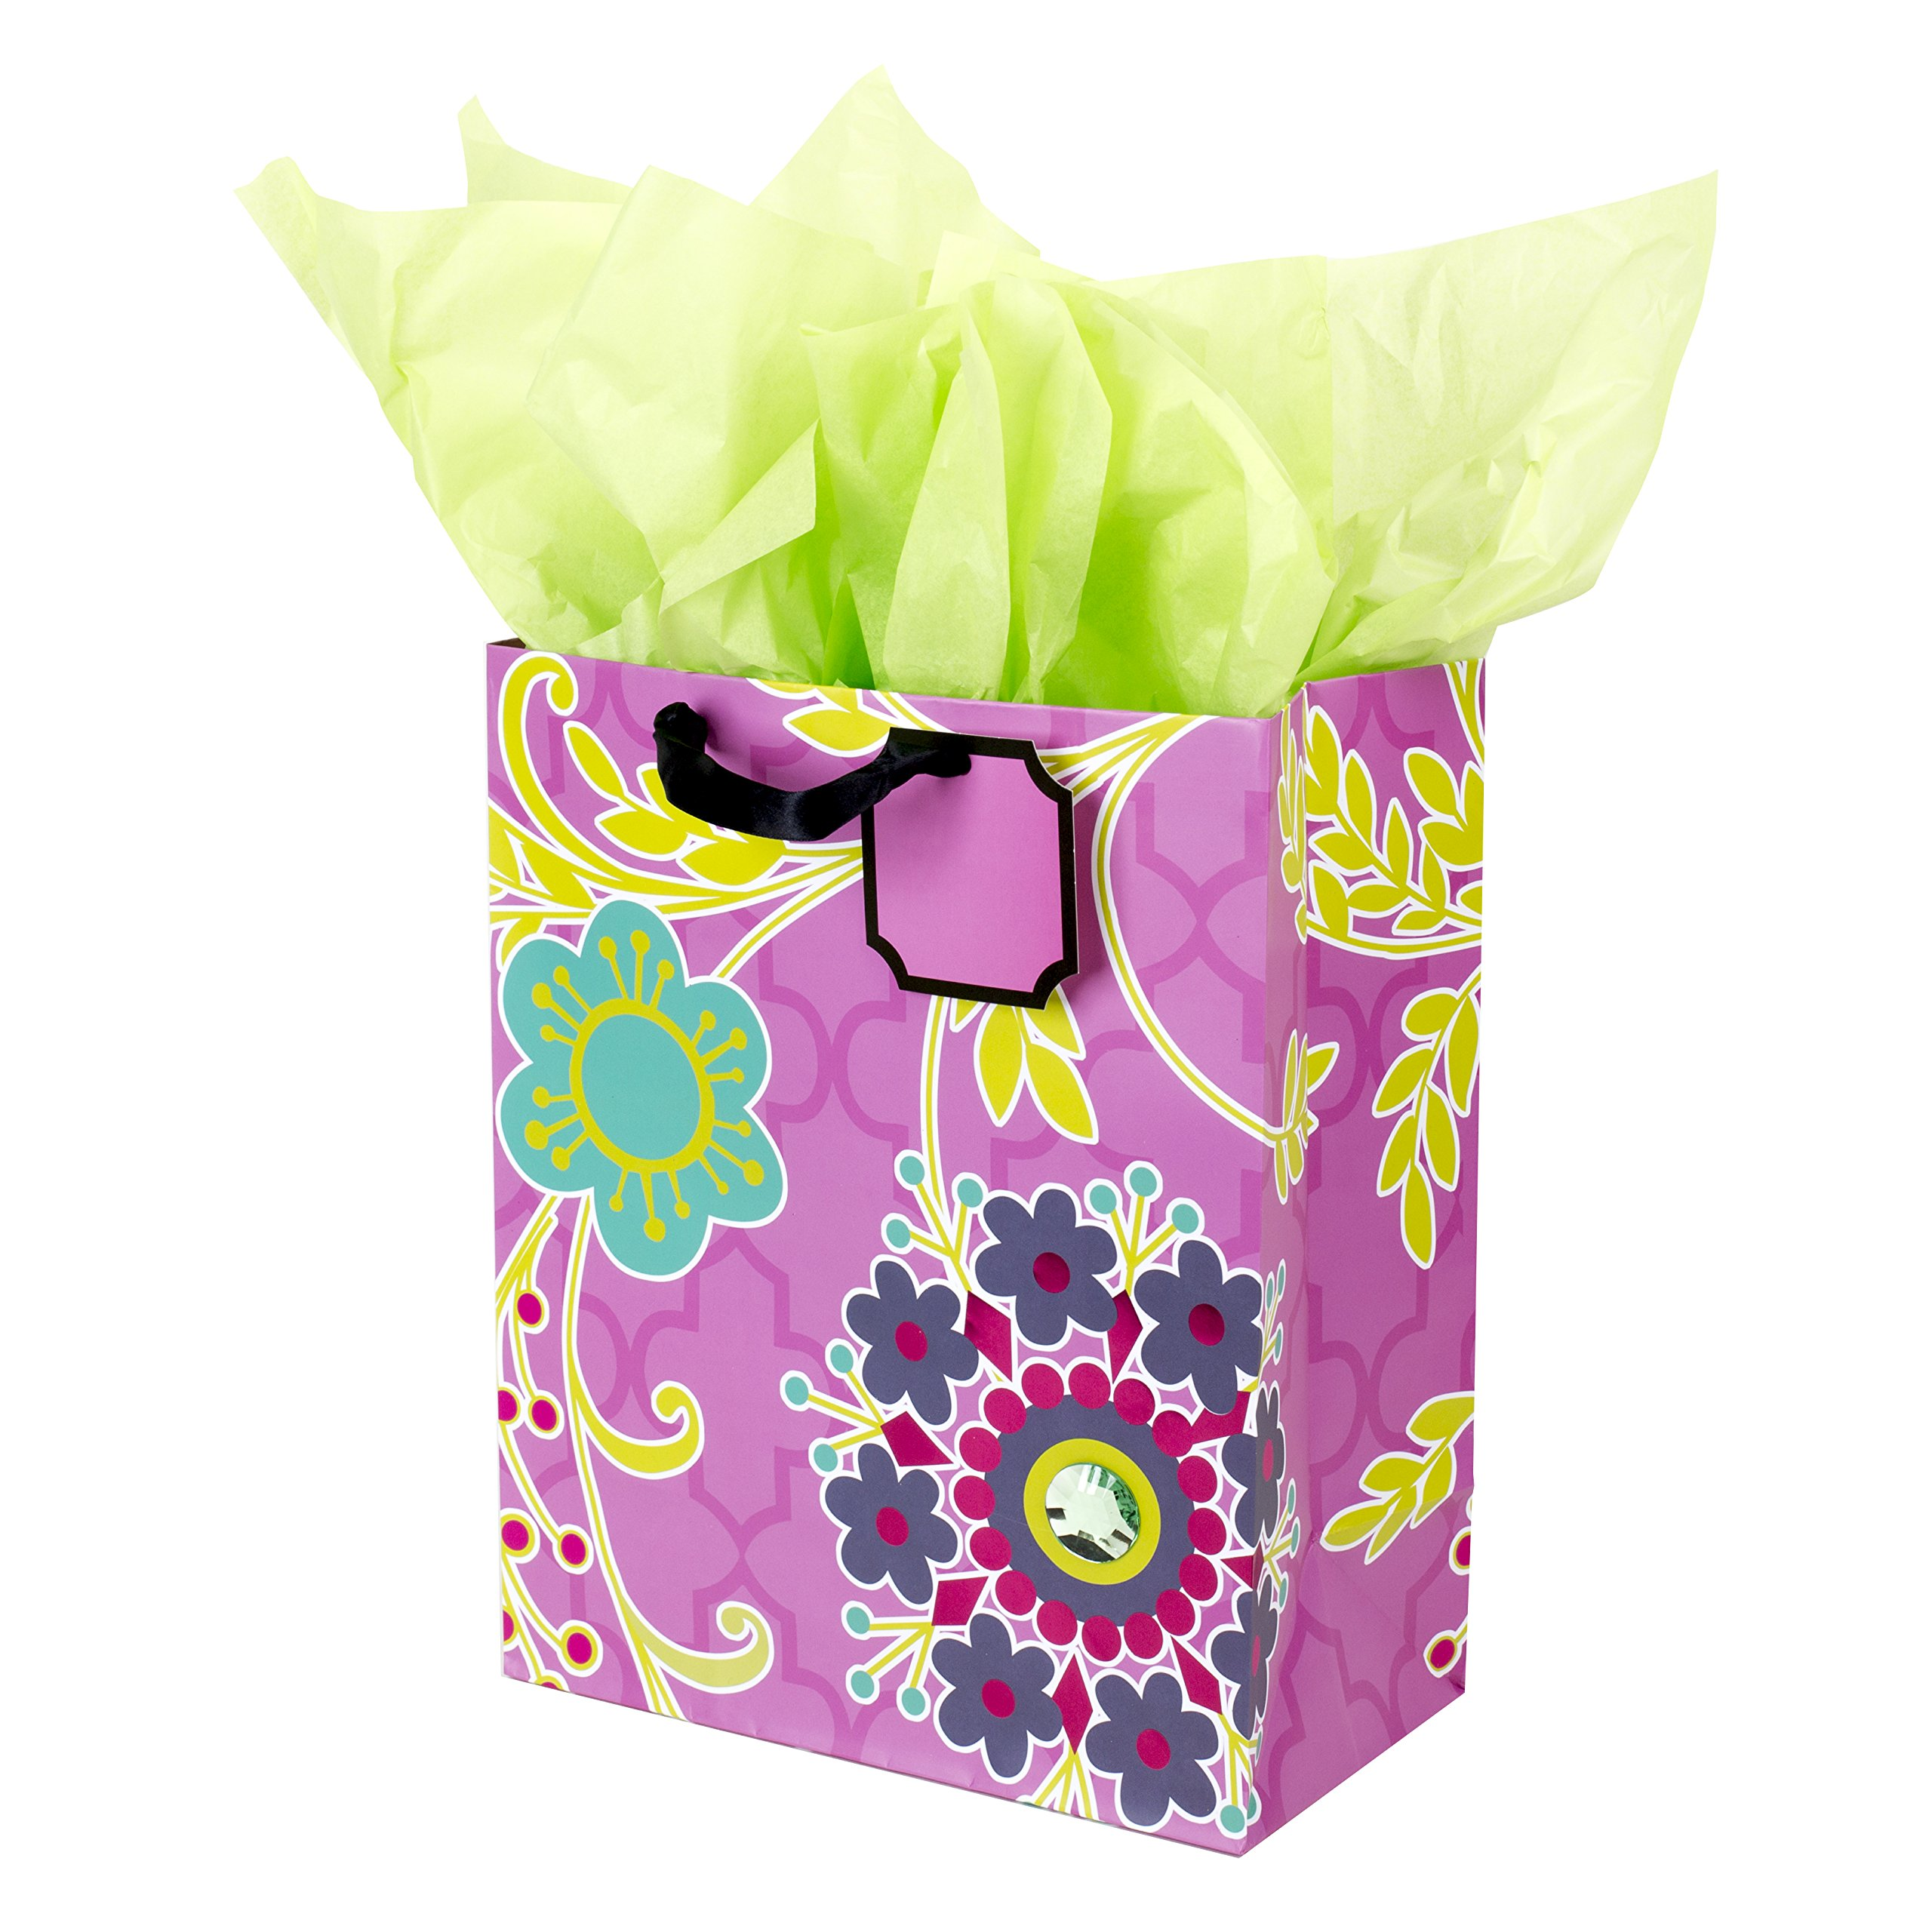 "Hallmark 13"" Large Gift Bag with Tissue Paper (Purple Flower with Gem) for Birthdays, Mothers Day, Bridal Showers, Baby Showers or Any Occasion"